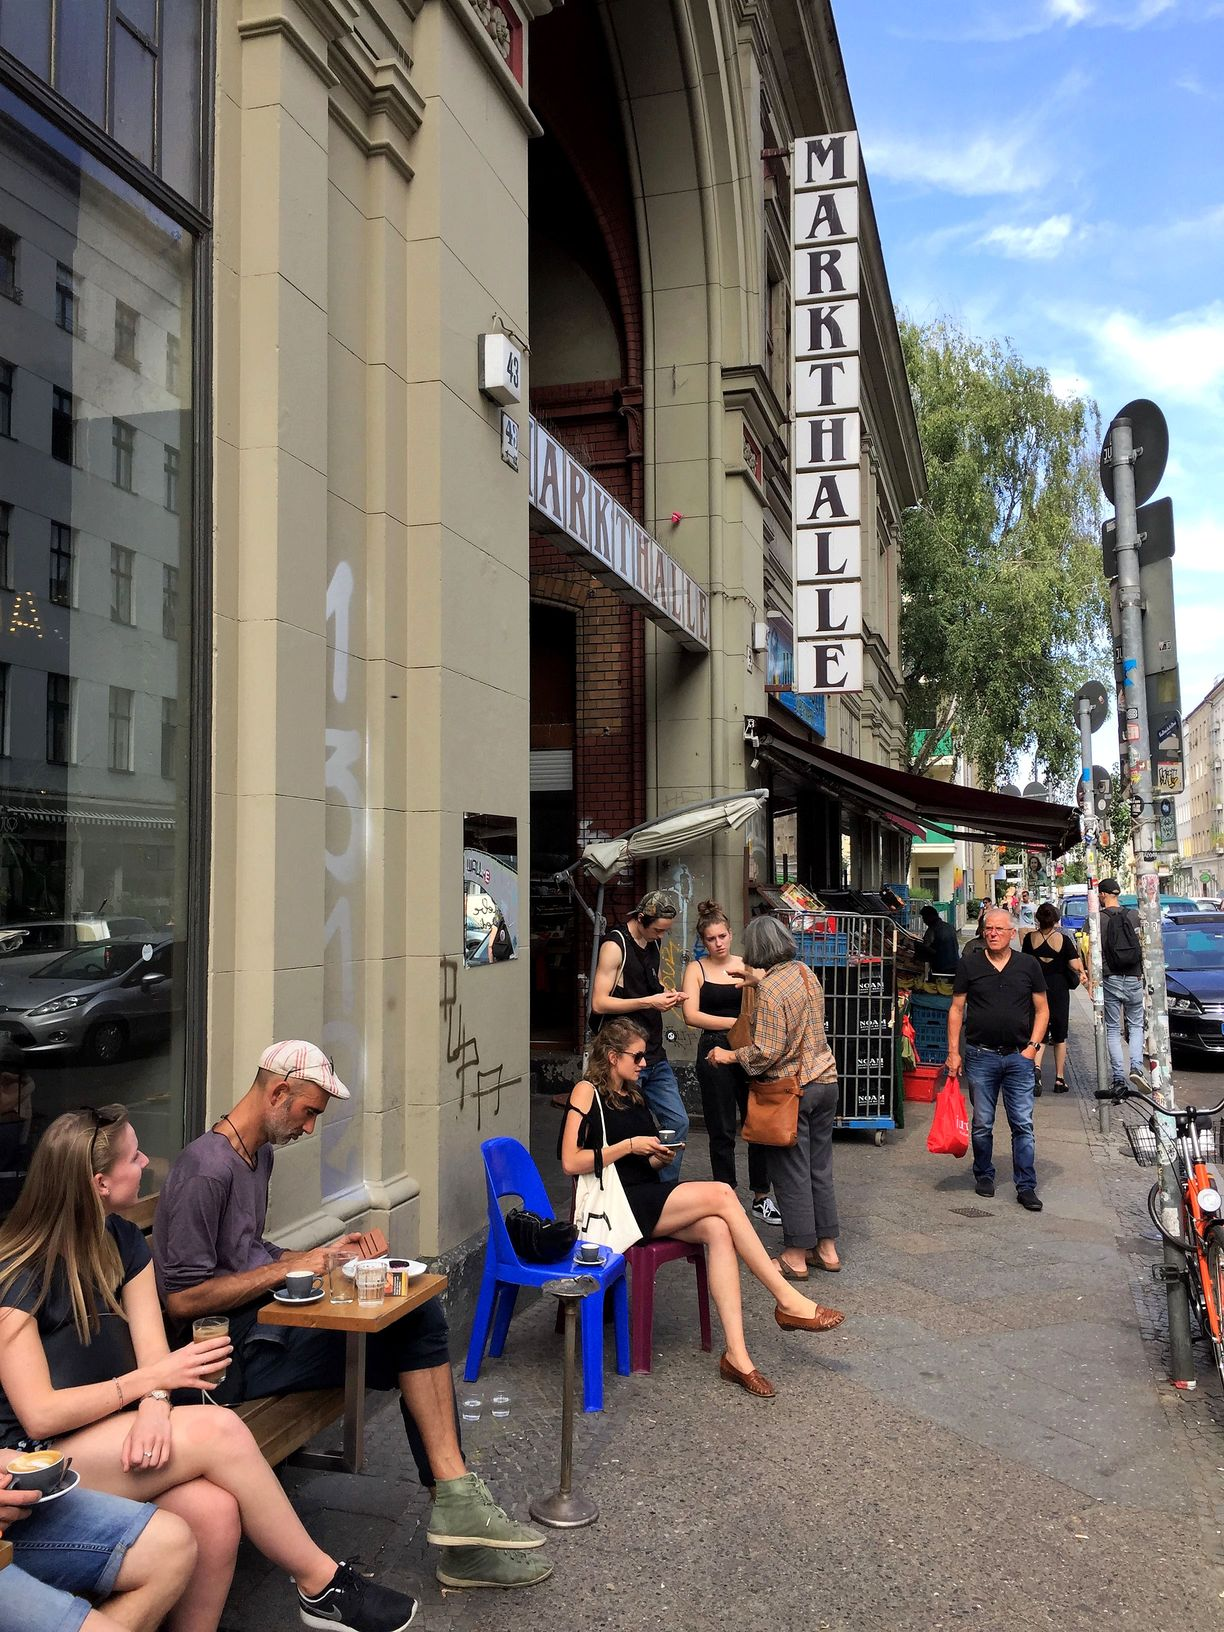 A perspective on the street life around Markthalle Neun in Berlin. Copyright: Thomas M. Krüger.